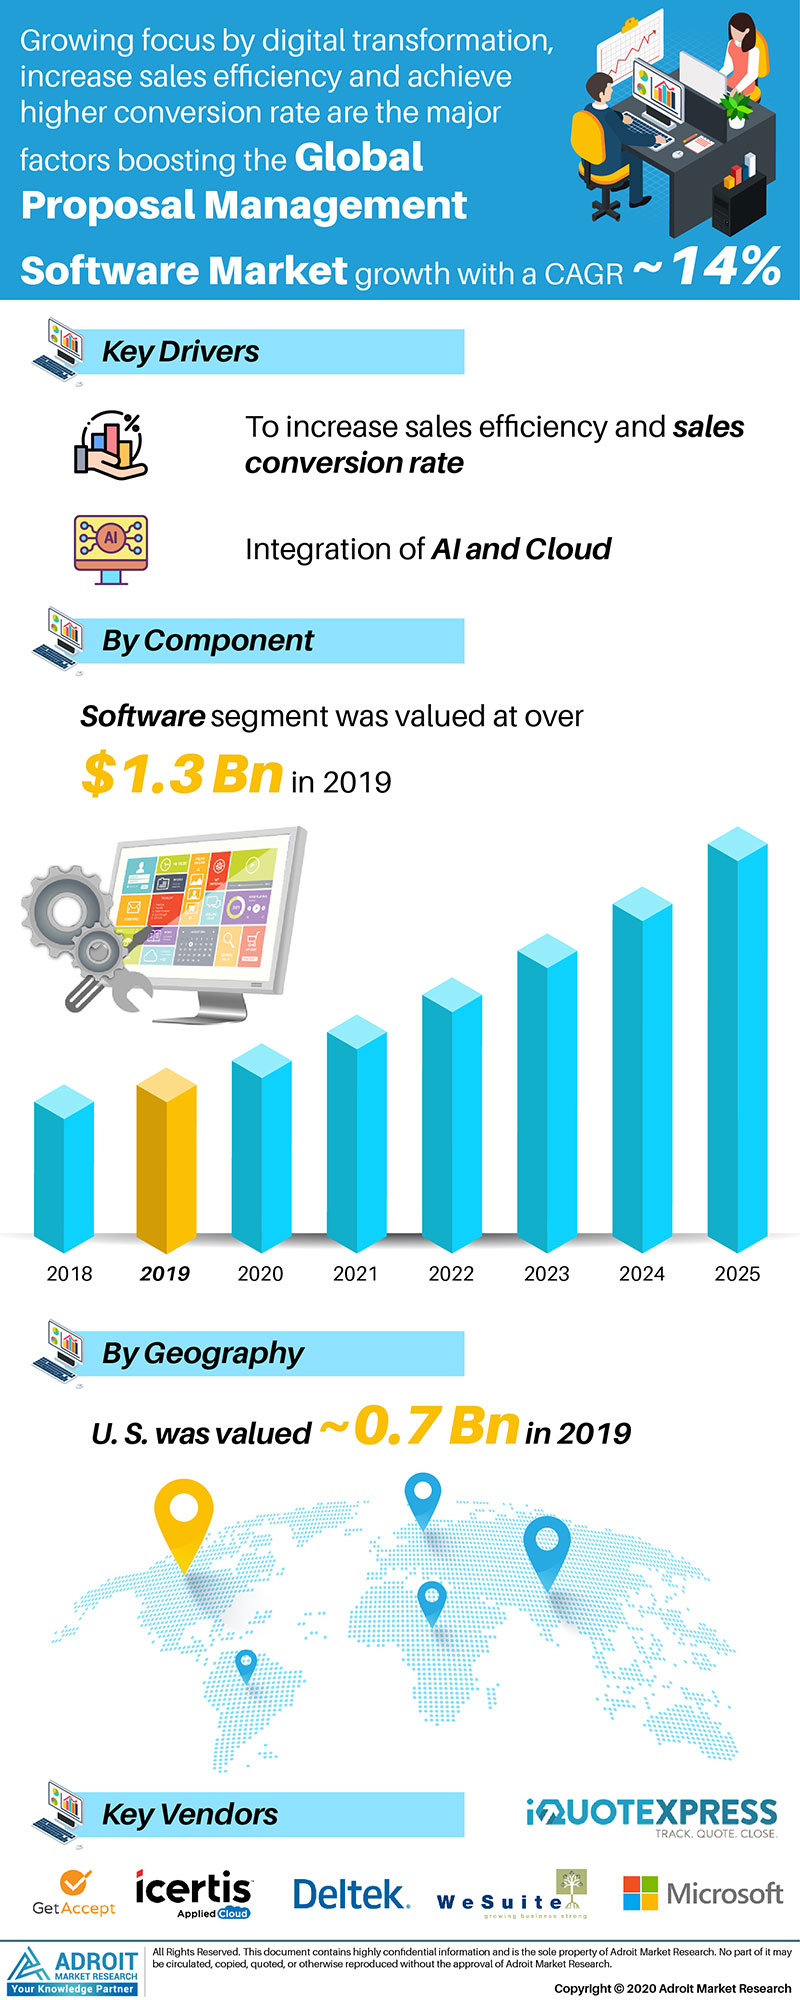 Proposal Management Software Market by Material, Application, and Region, Global Forecasts 2018 to 2025